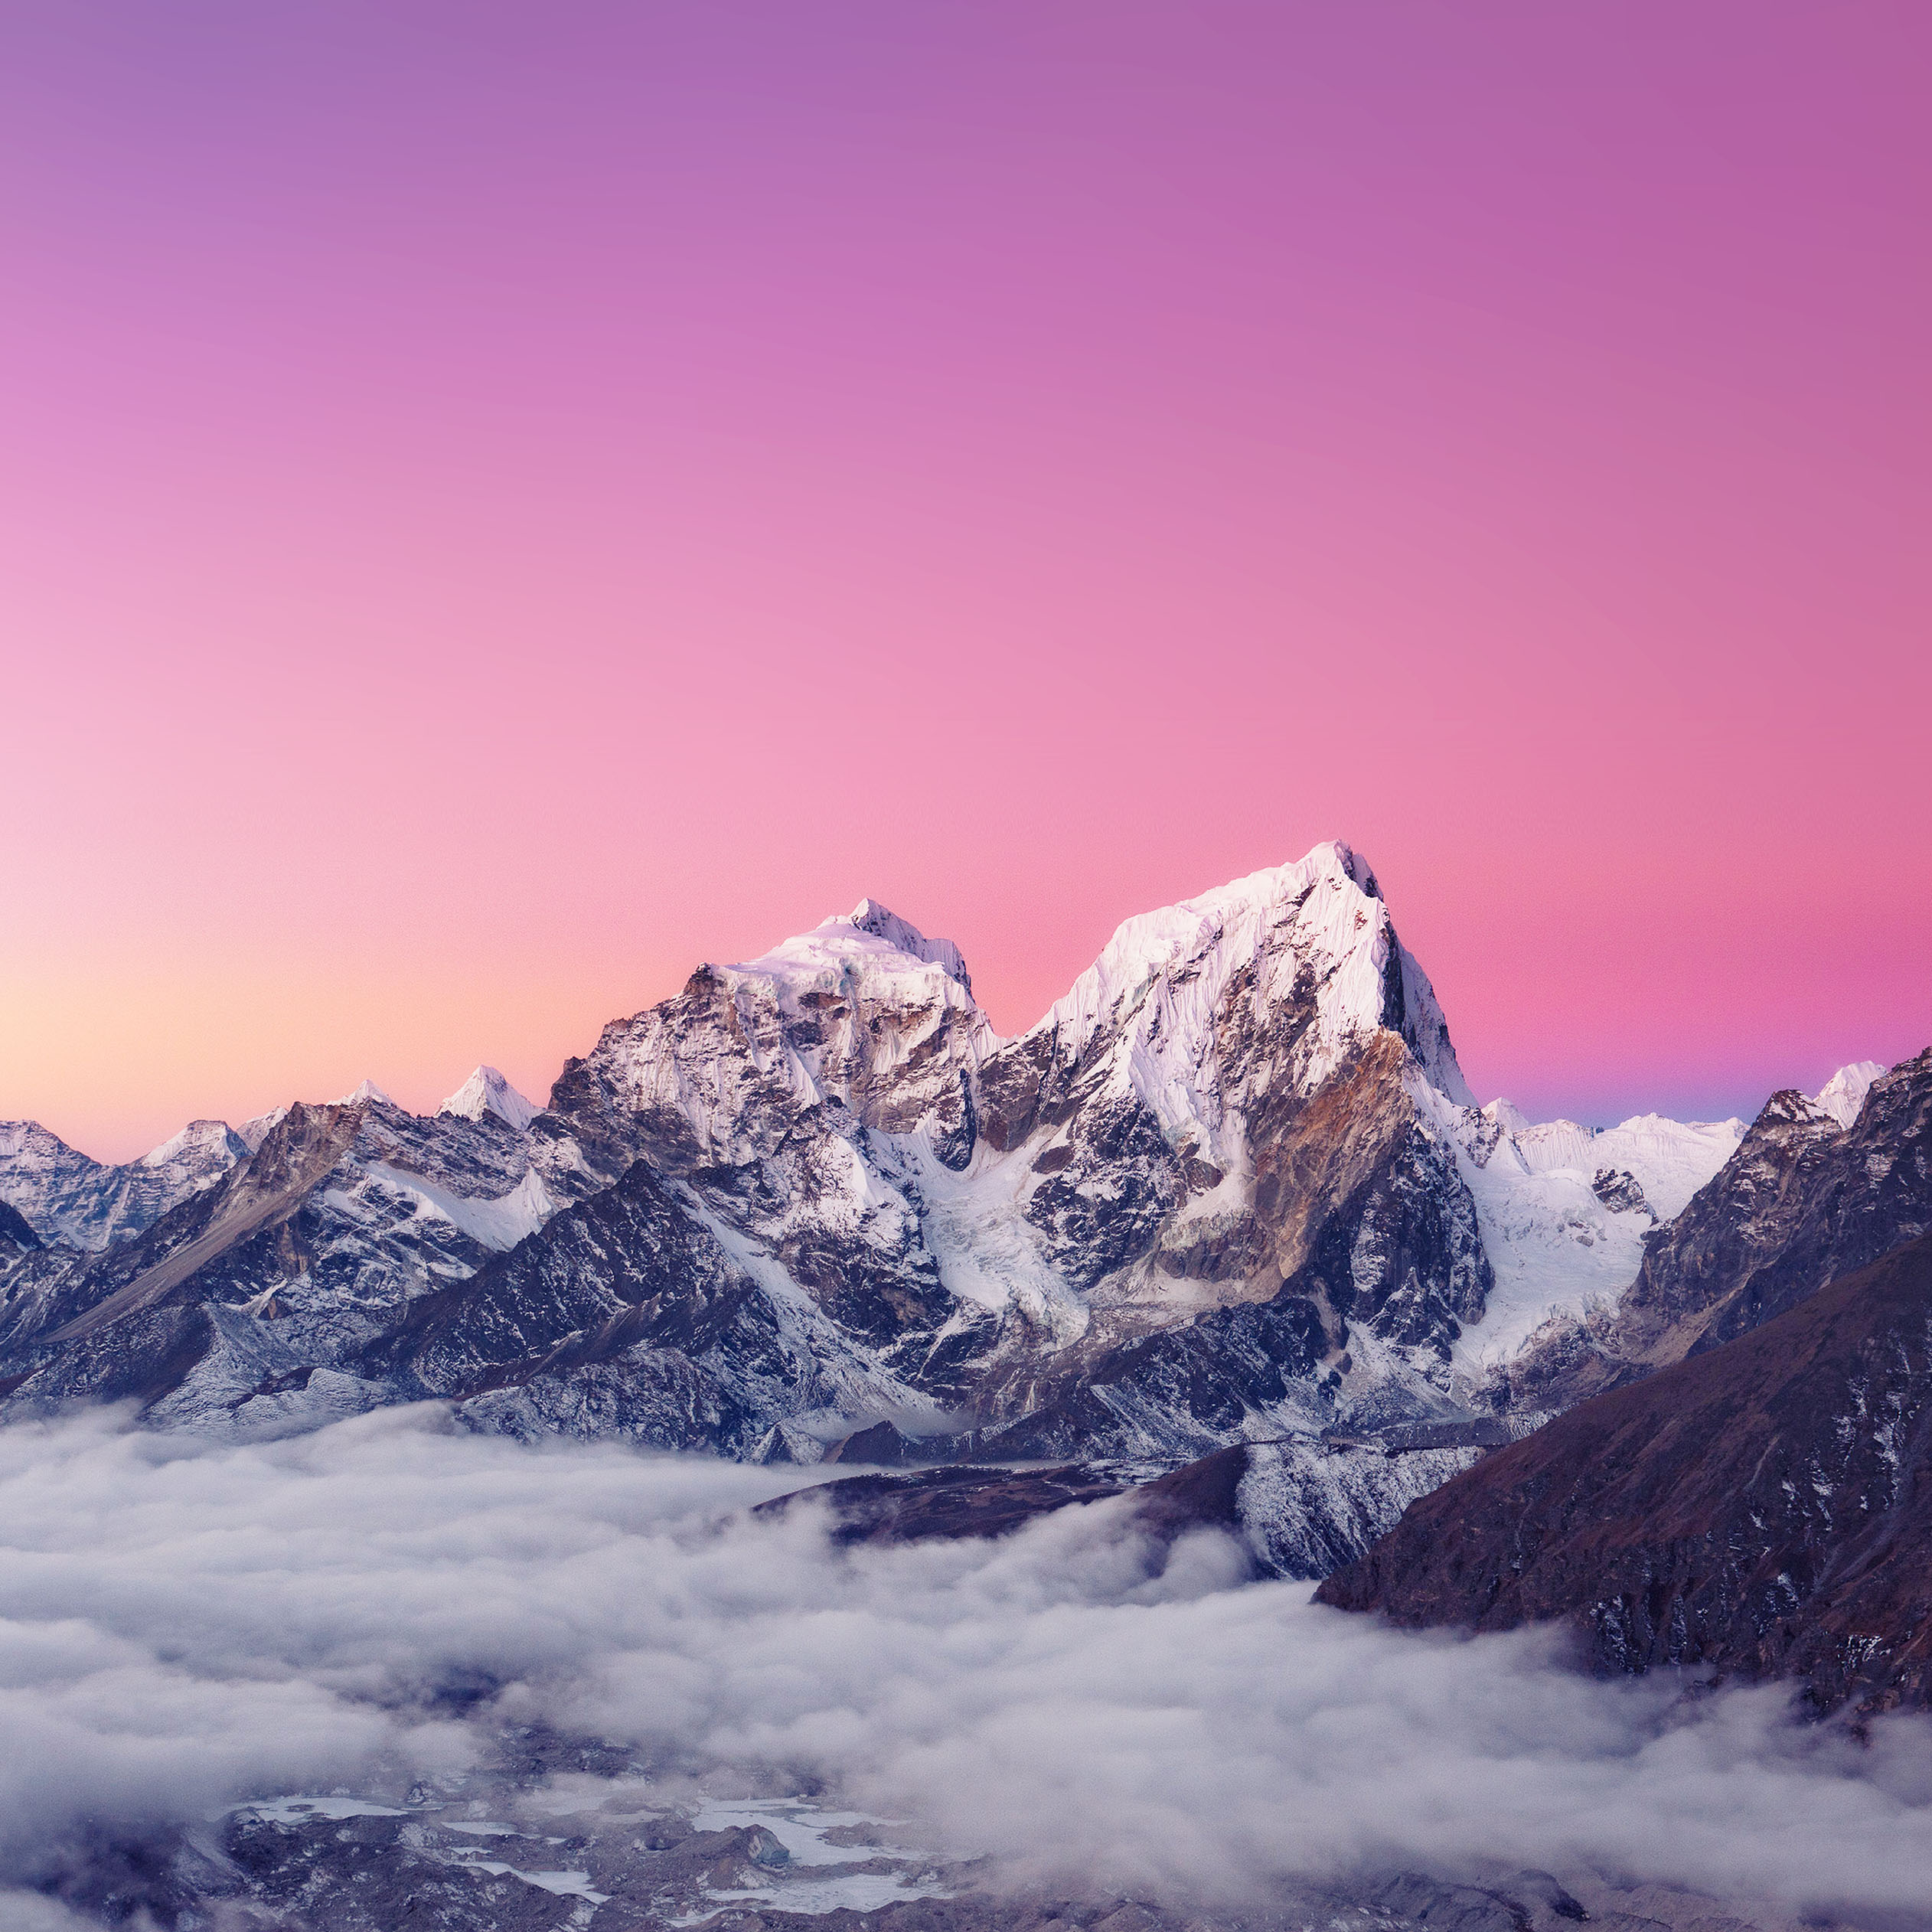 pink snow mountain wallpaper - photo #16